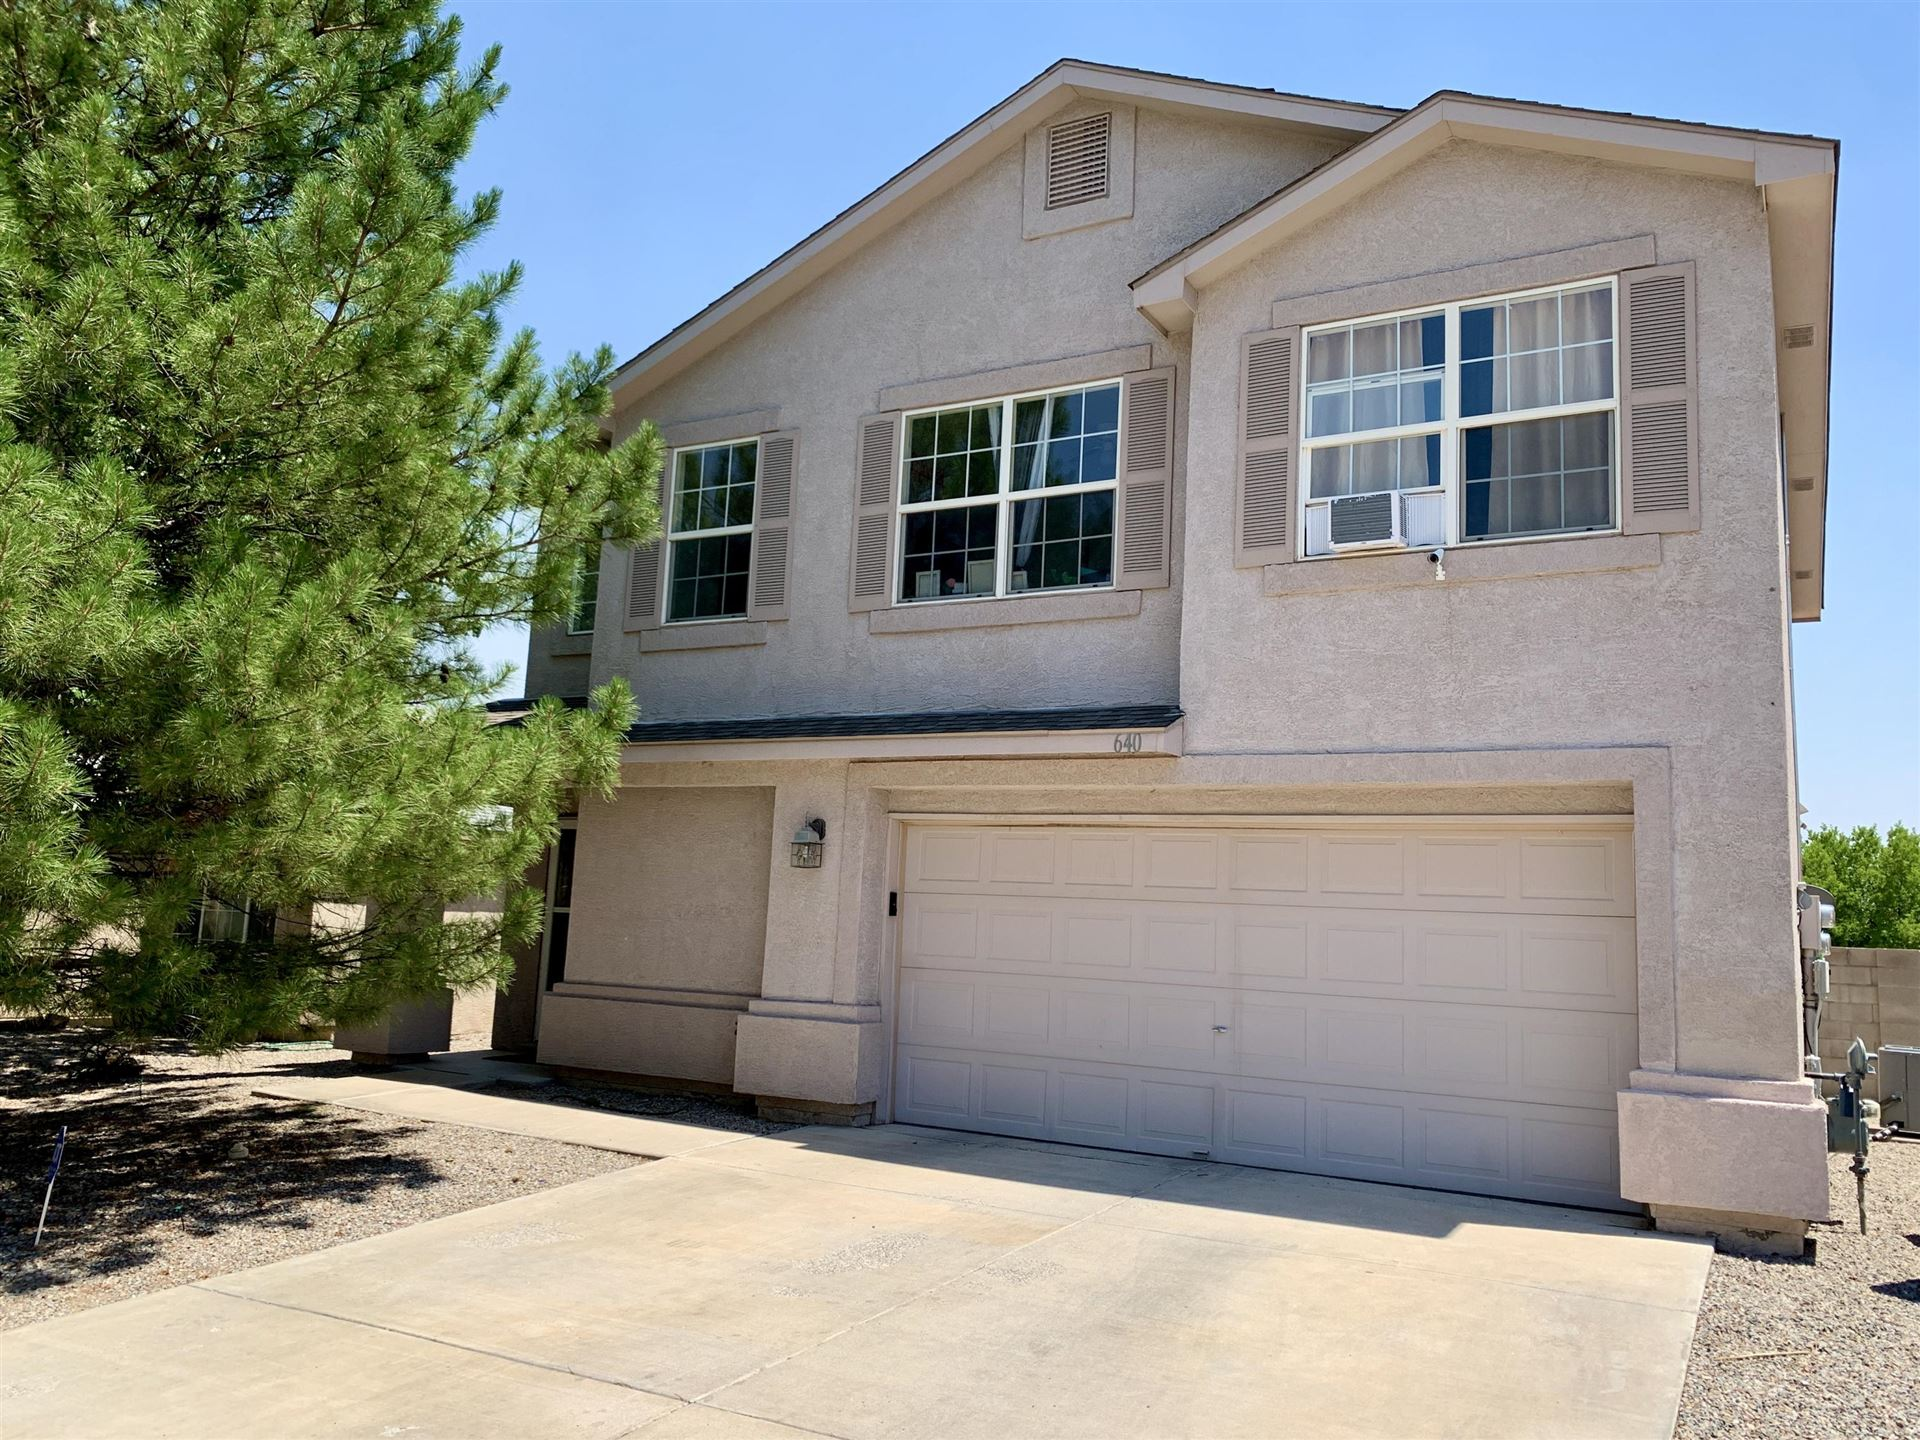 Photo of 640 MORNING MEADOWS Drive NE, Rio Rancho, NM 87144 (MLS # 978047)